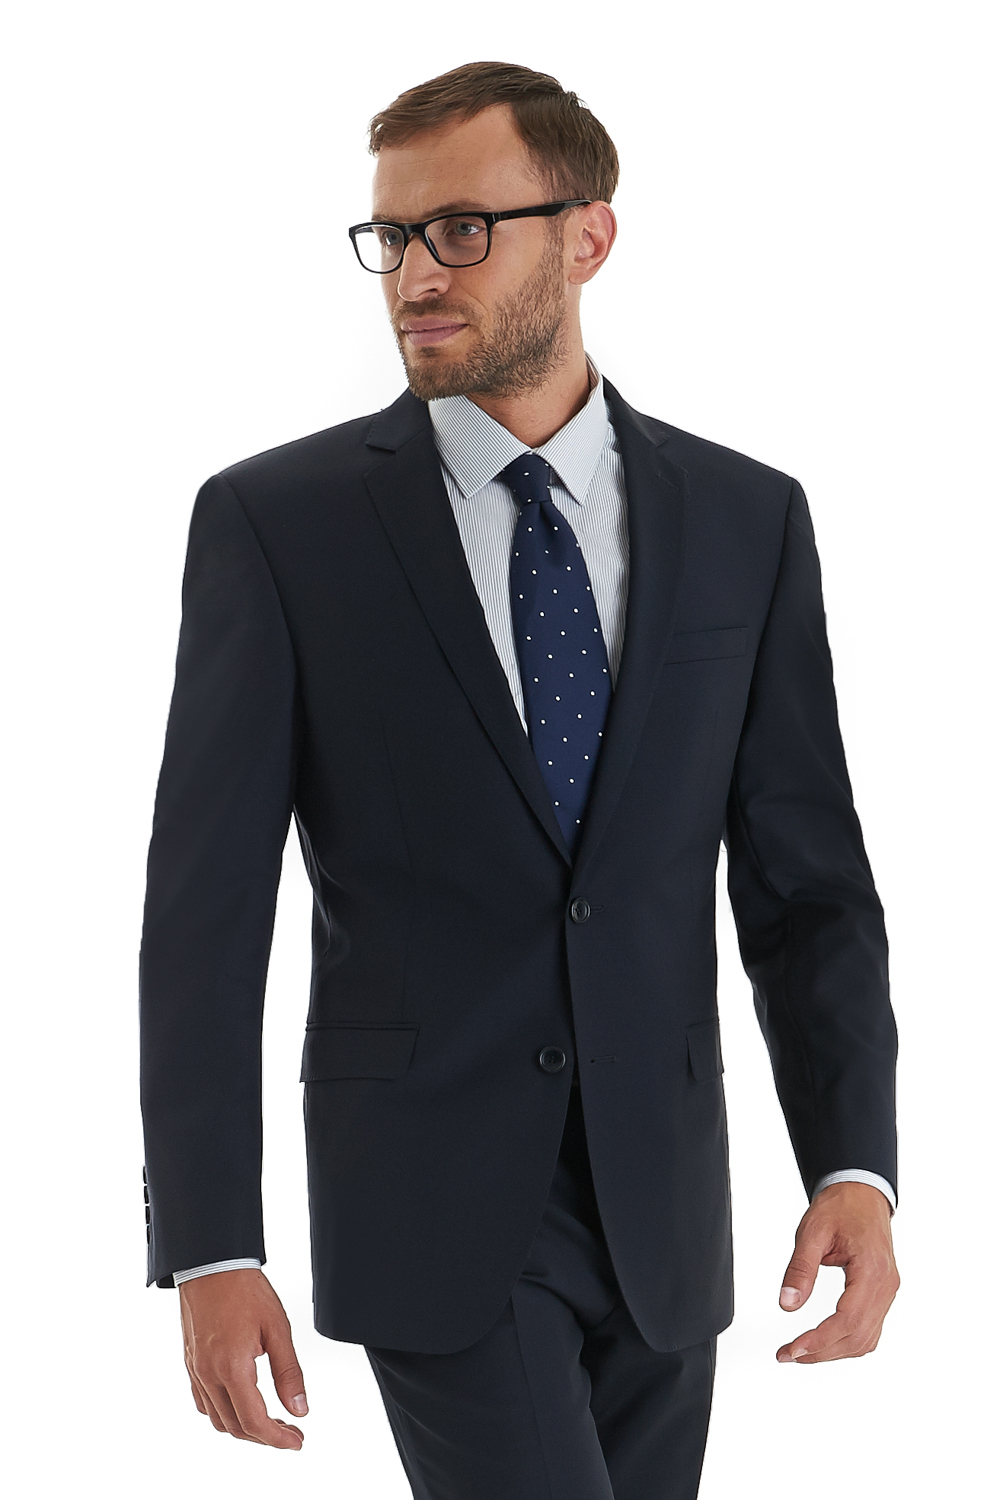 Confused about the difference between a blazer vs. a suit jacket? How about a sport coat vs. blazer? Learn the Difference Between a Blazer and a Sport/Suit Jacket. Published on April 29, doubling that solid navy suit jacket as a navy blazer is absolutely okay! Reply. Jovan says: April 29, .